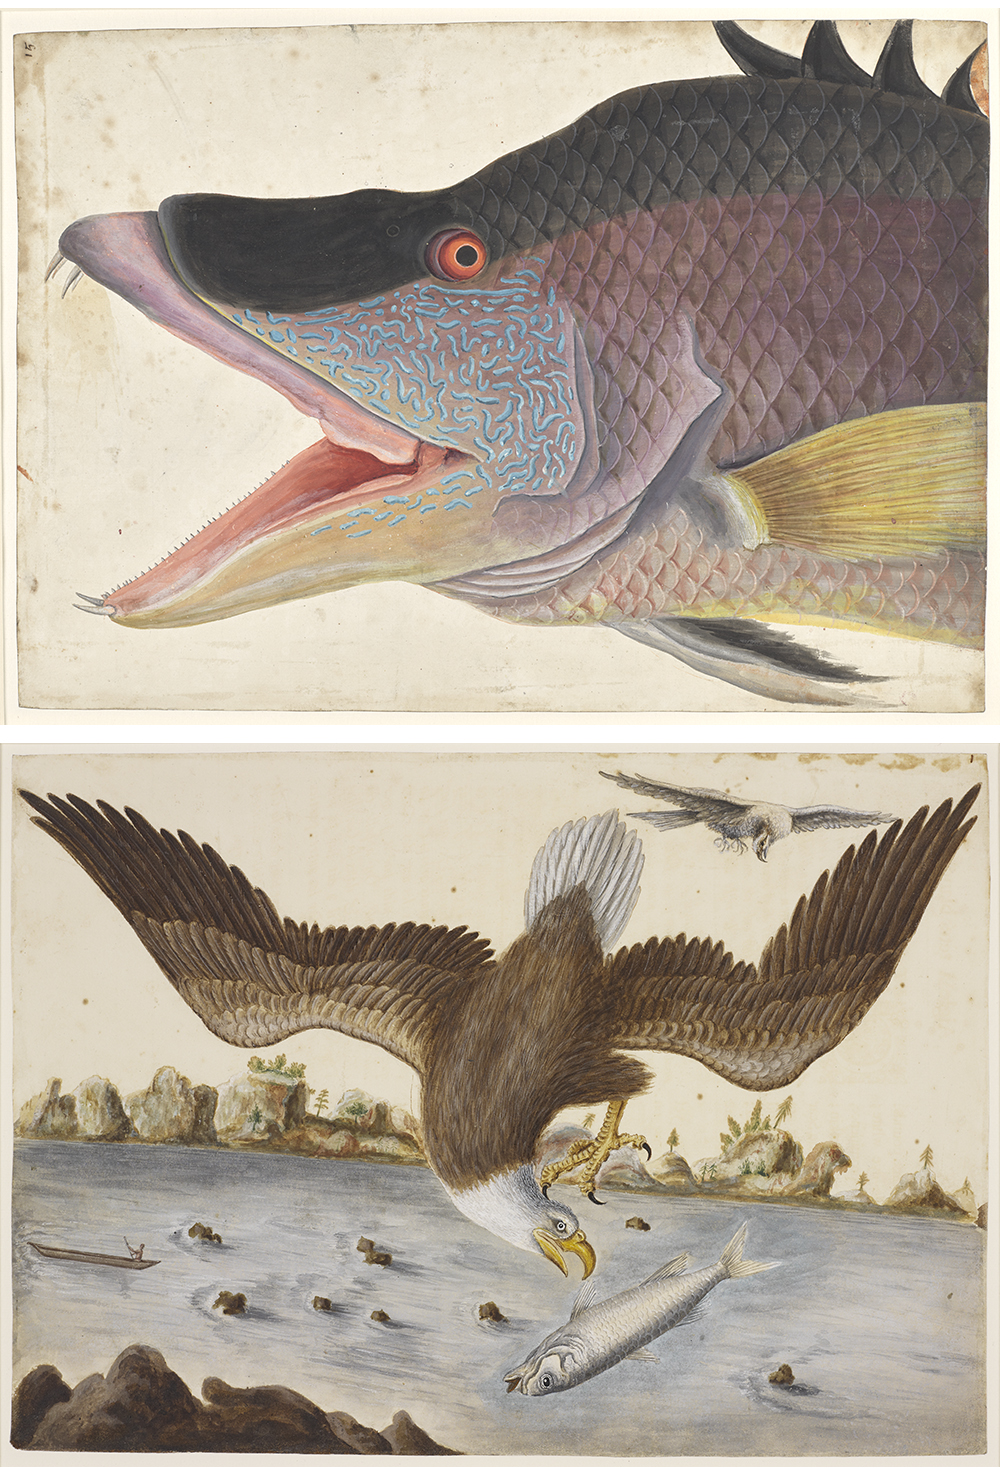 Top: The Great Hog-Fish, by Mark Catesby, c. 1725. Bottom: The Bald Eagle and the Fishing Hawk, by Mark Catesby, c. 1726. Royal Collection Trust / © Her Majesty Queen Elizabeth II 2021.